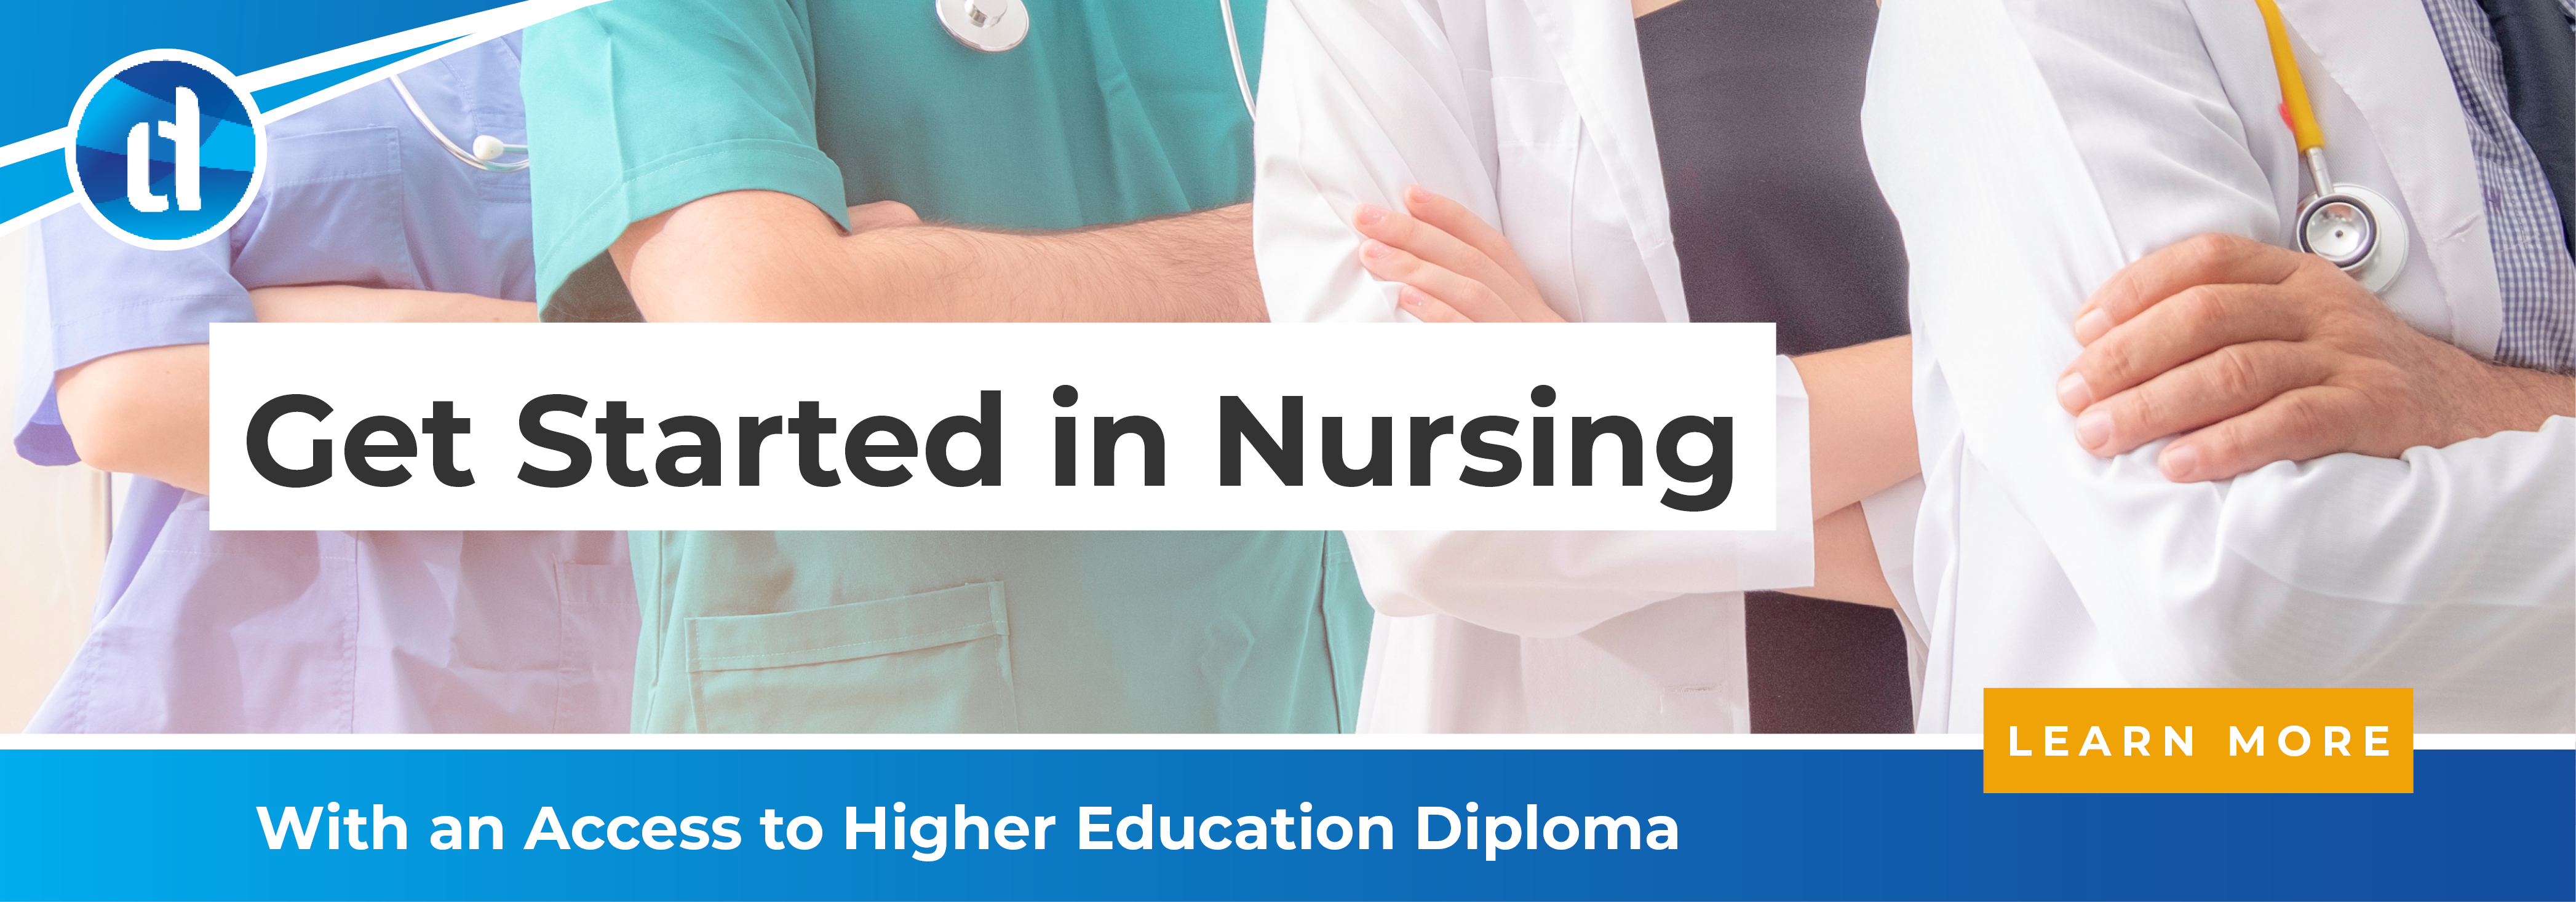 learndirect - get started in nursing and become an intensive care nurse